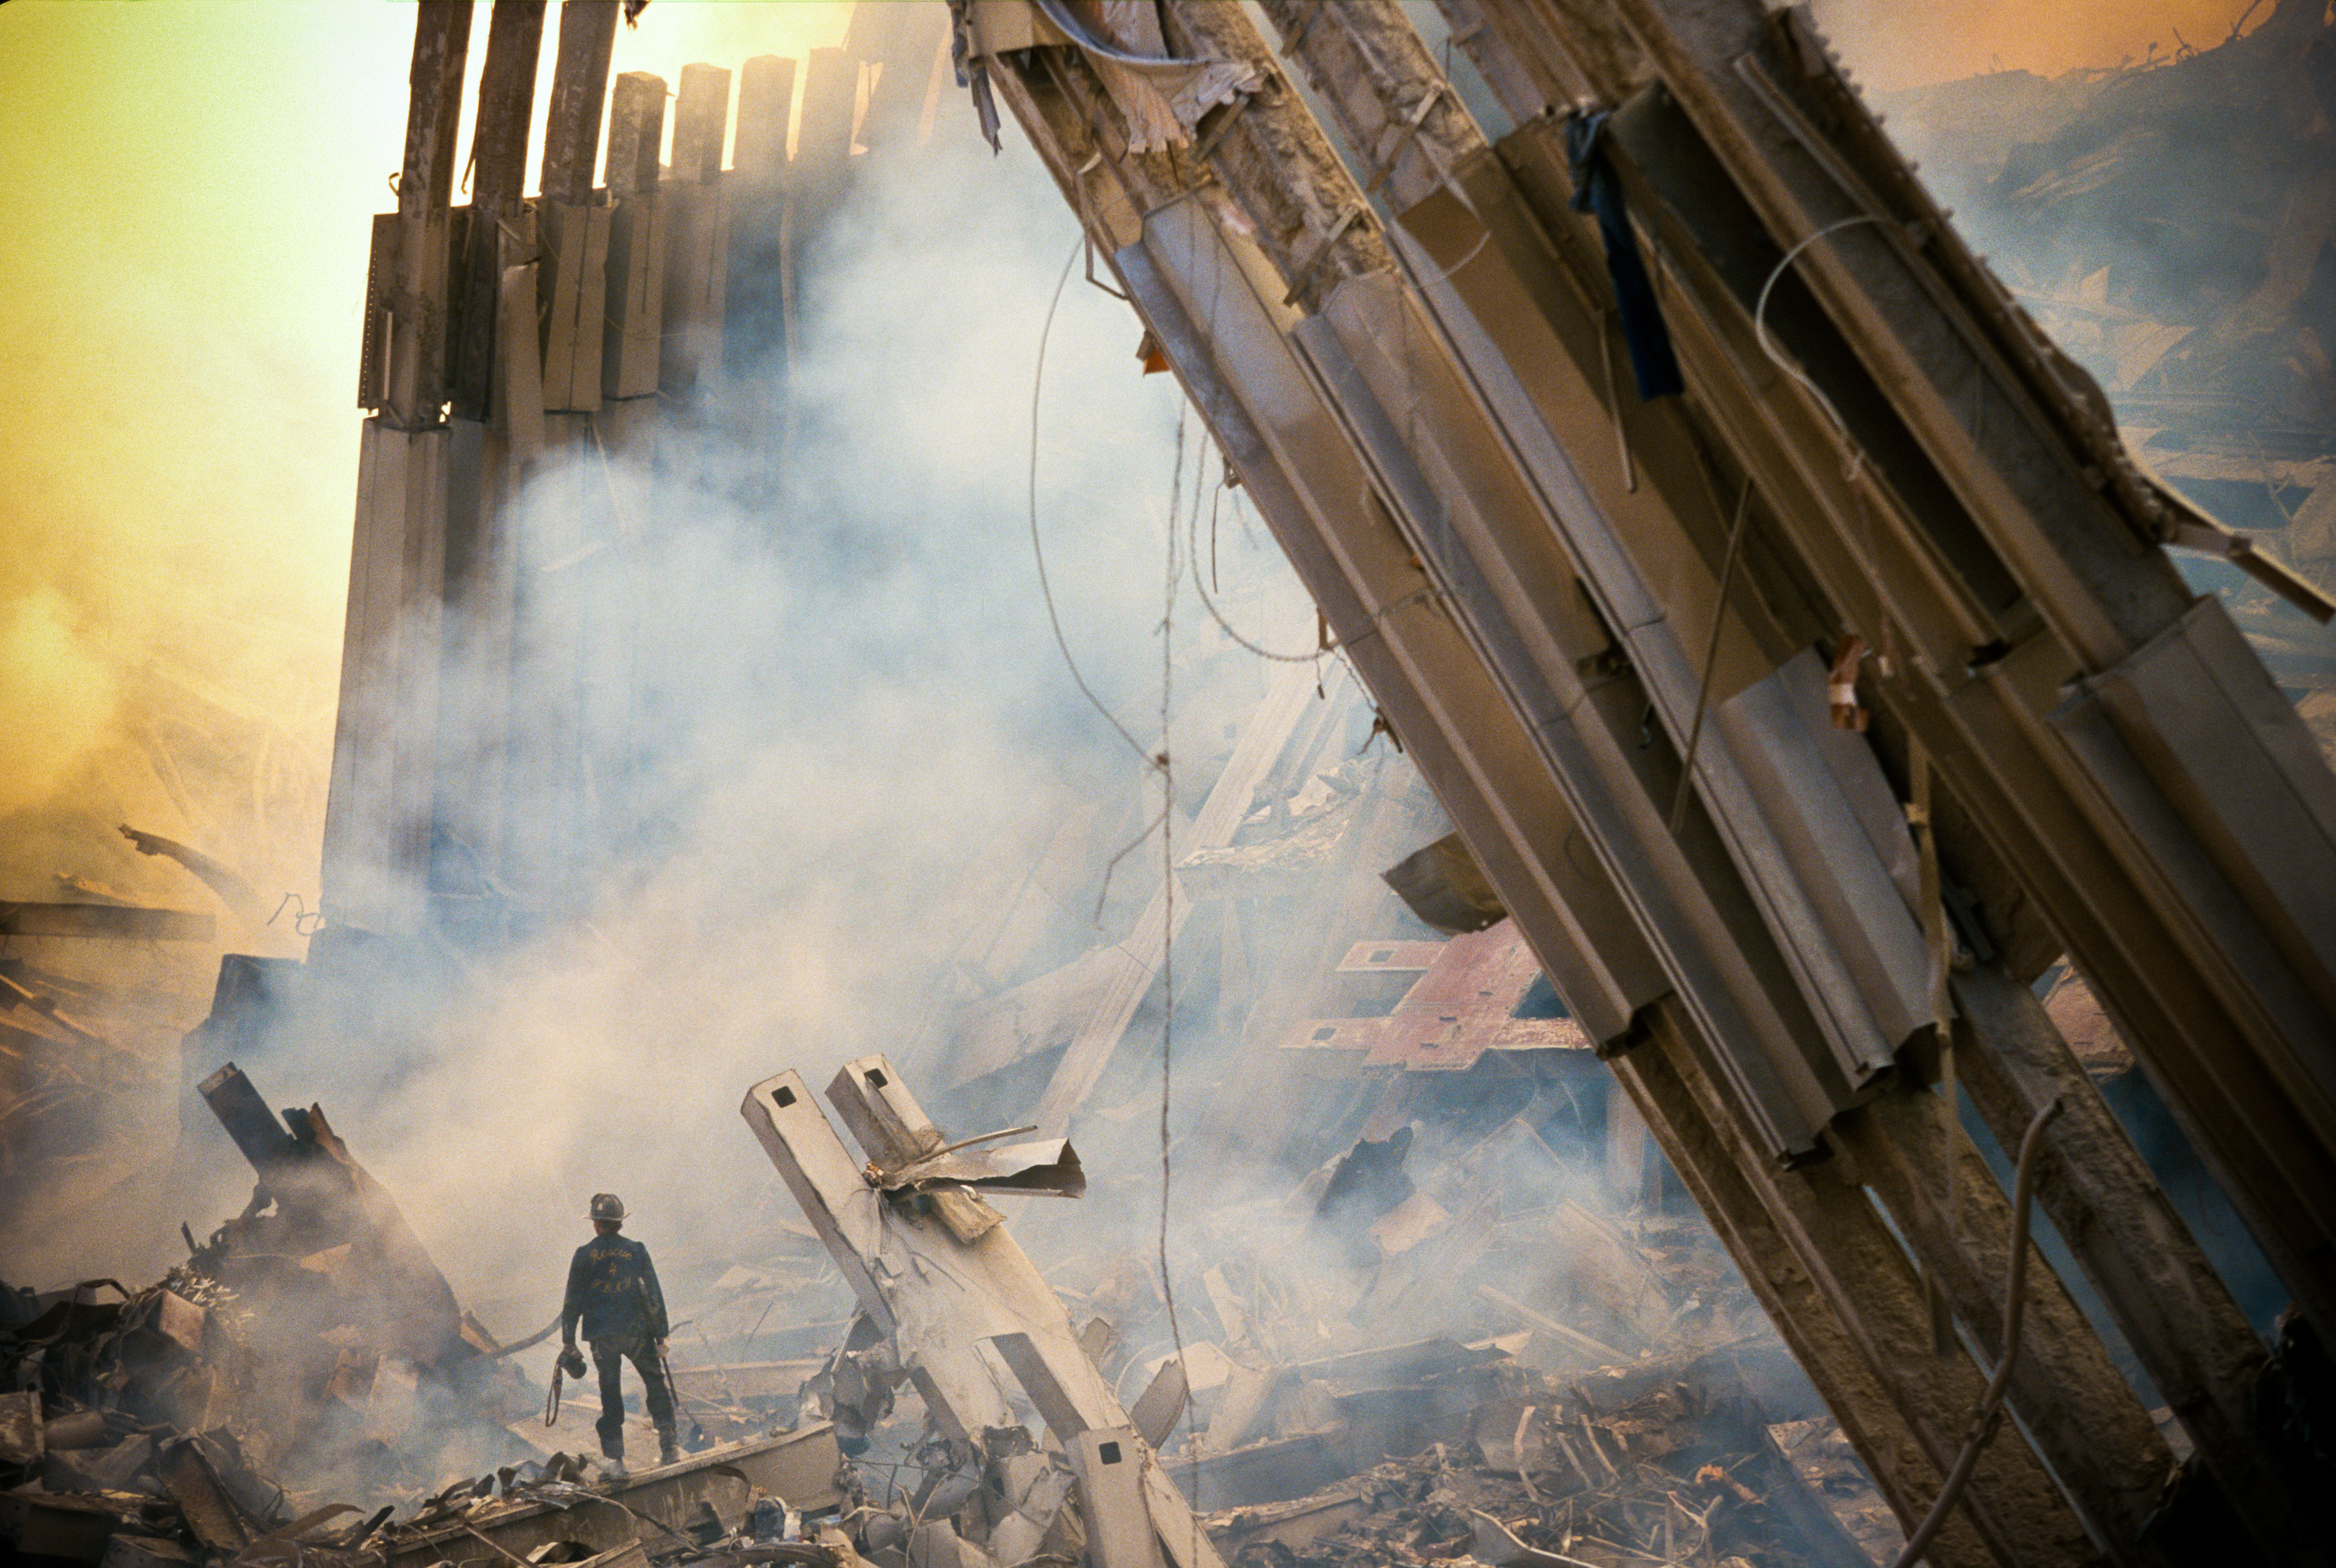 The rubble of the World Trade Center smoulders one day after two hijacked commercial jets hit the twin towers in New York City, causing both to collapse.